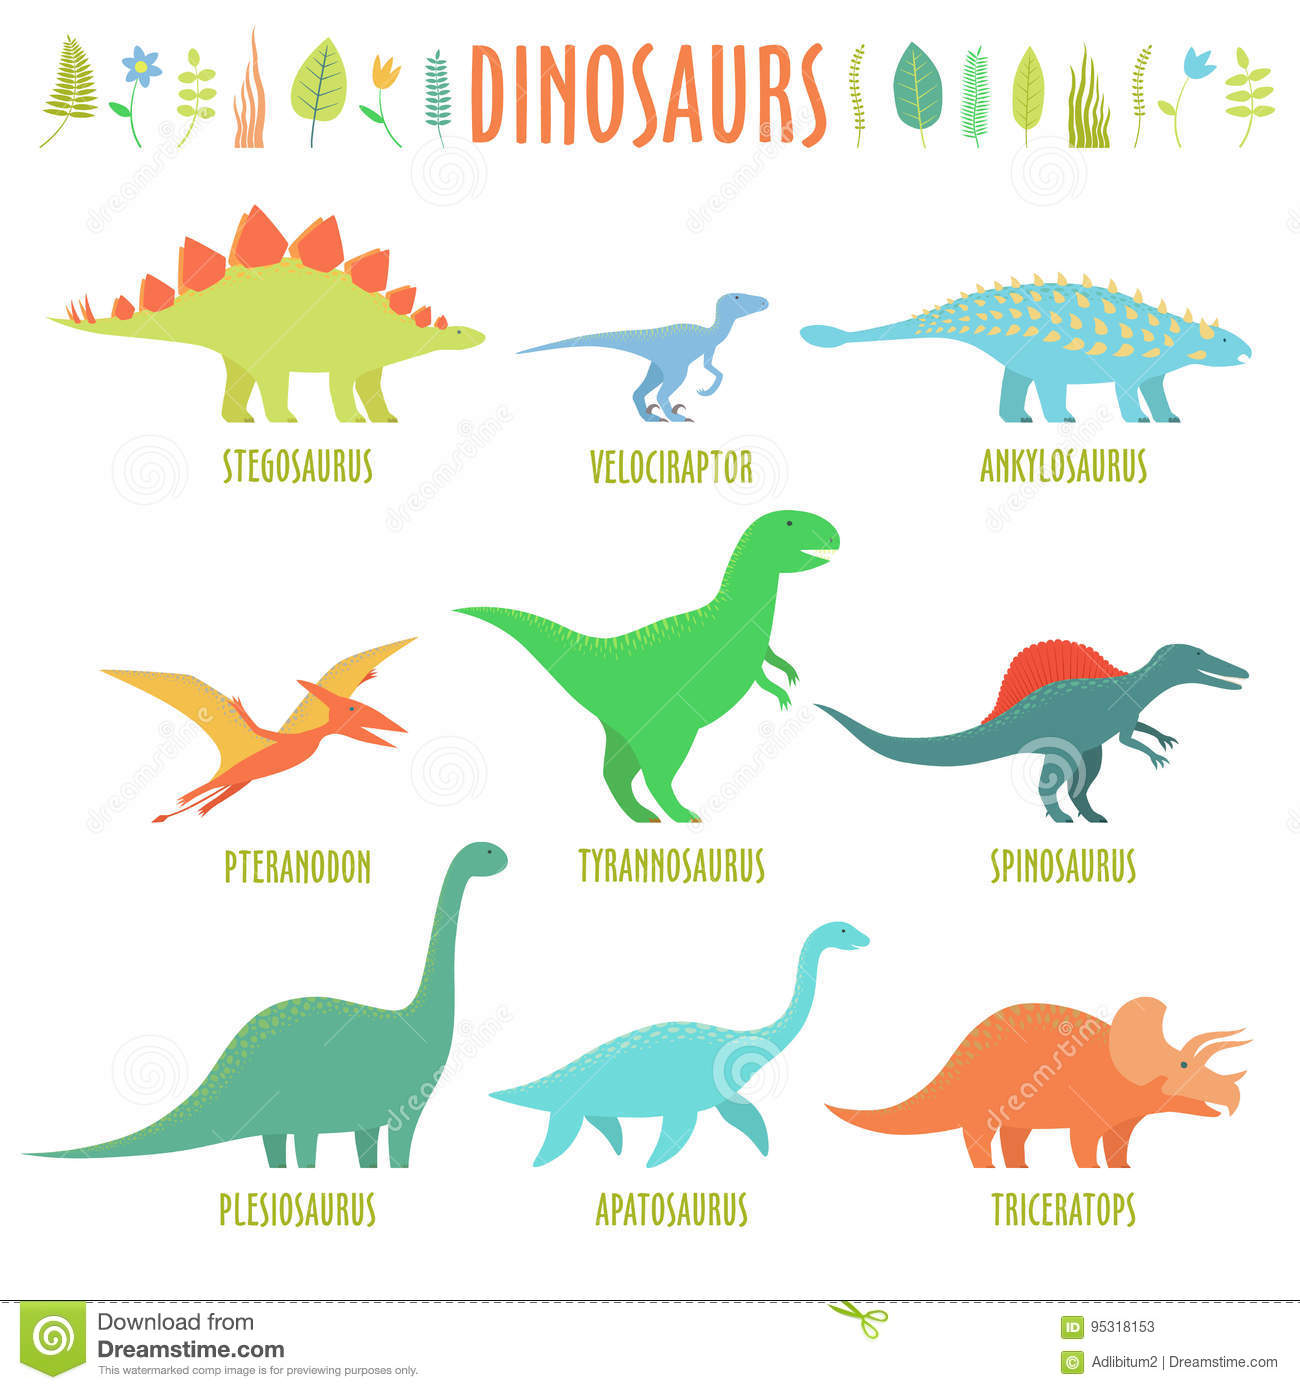 Dinosaurs Types Stock Vector - Image: 95318153